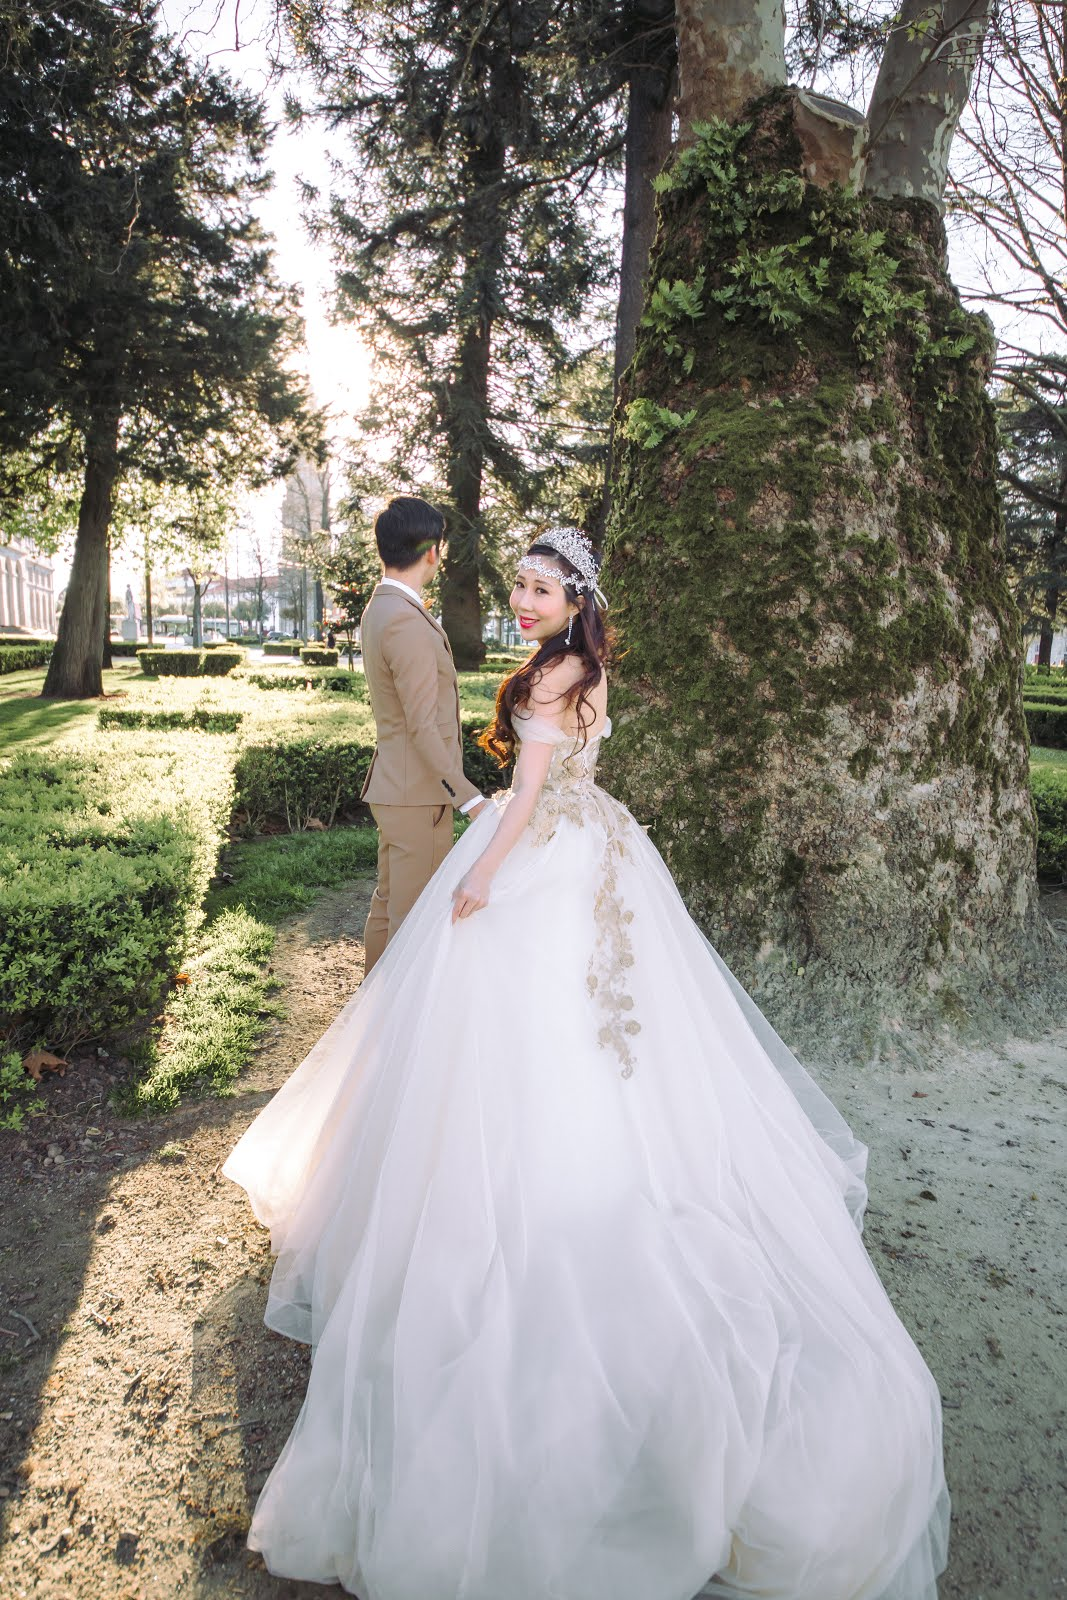 Dr Victor Teng & Sara Shantelle Lim's Pre-Wedding Photos at Carmo and Carmelitas (PART 3)